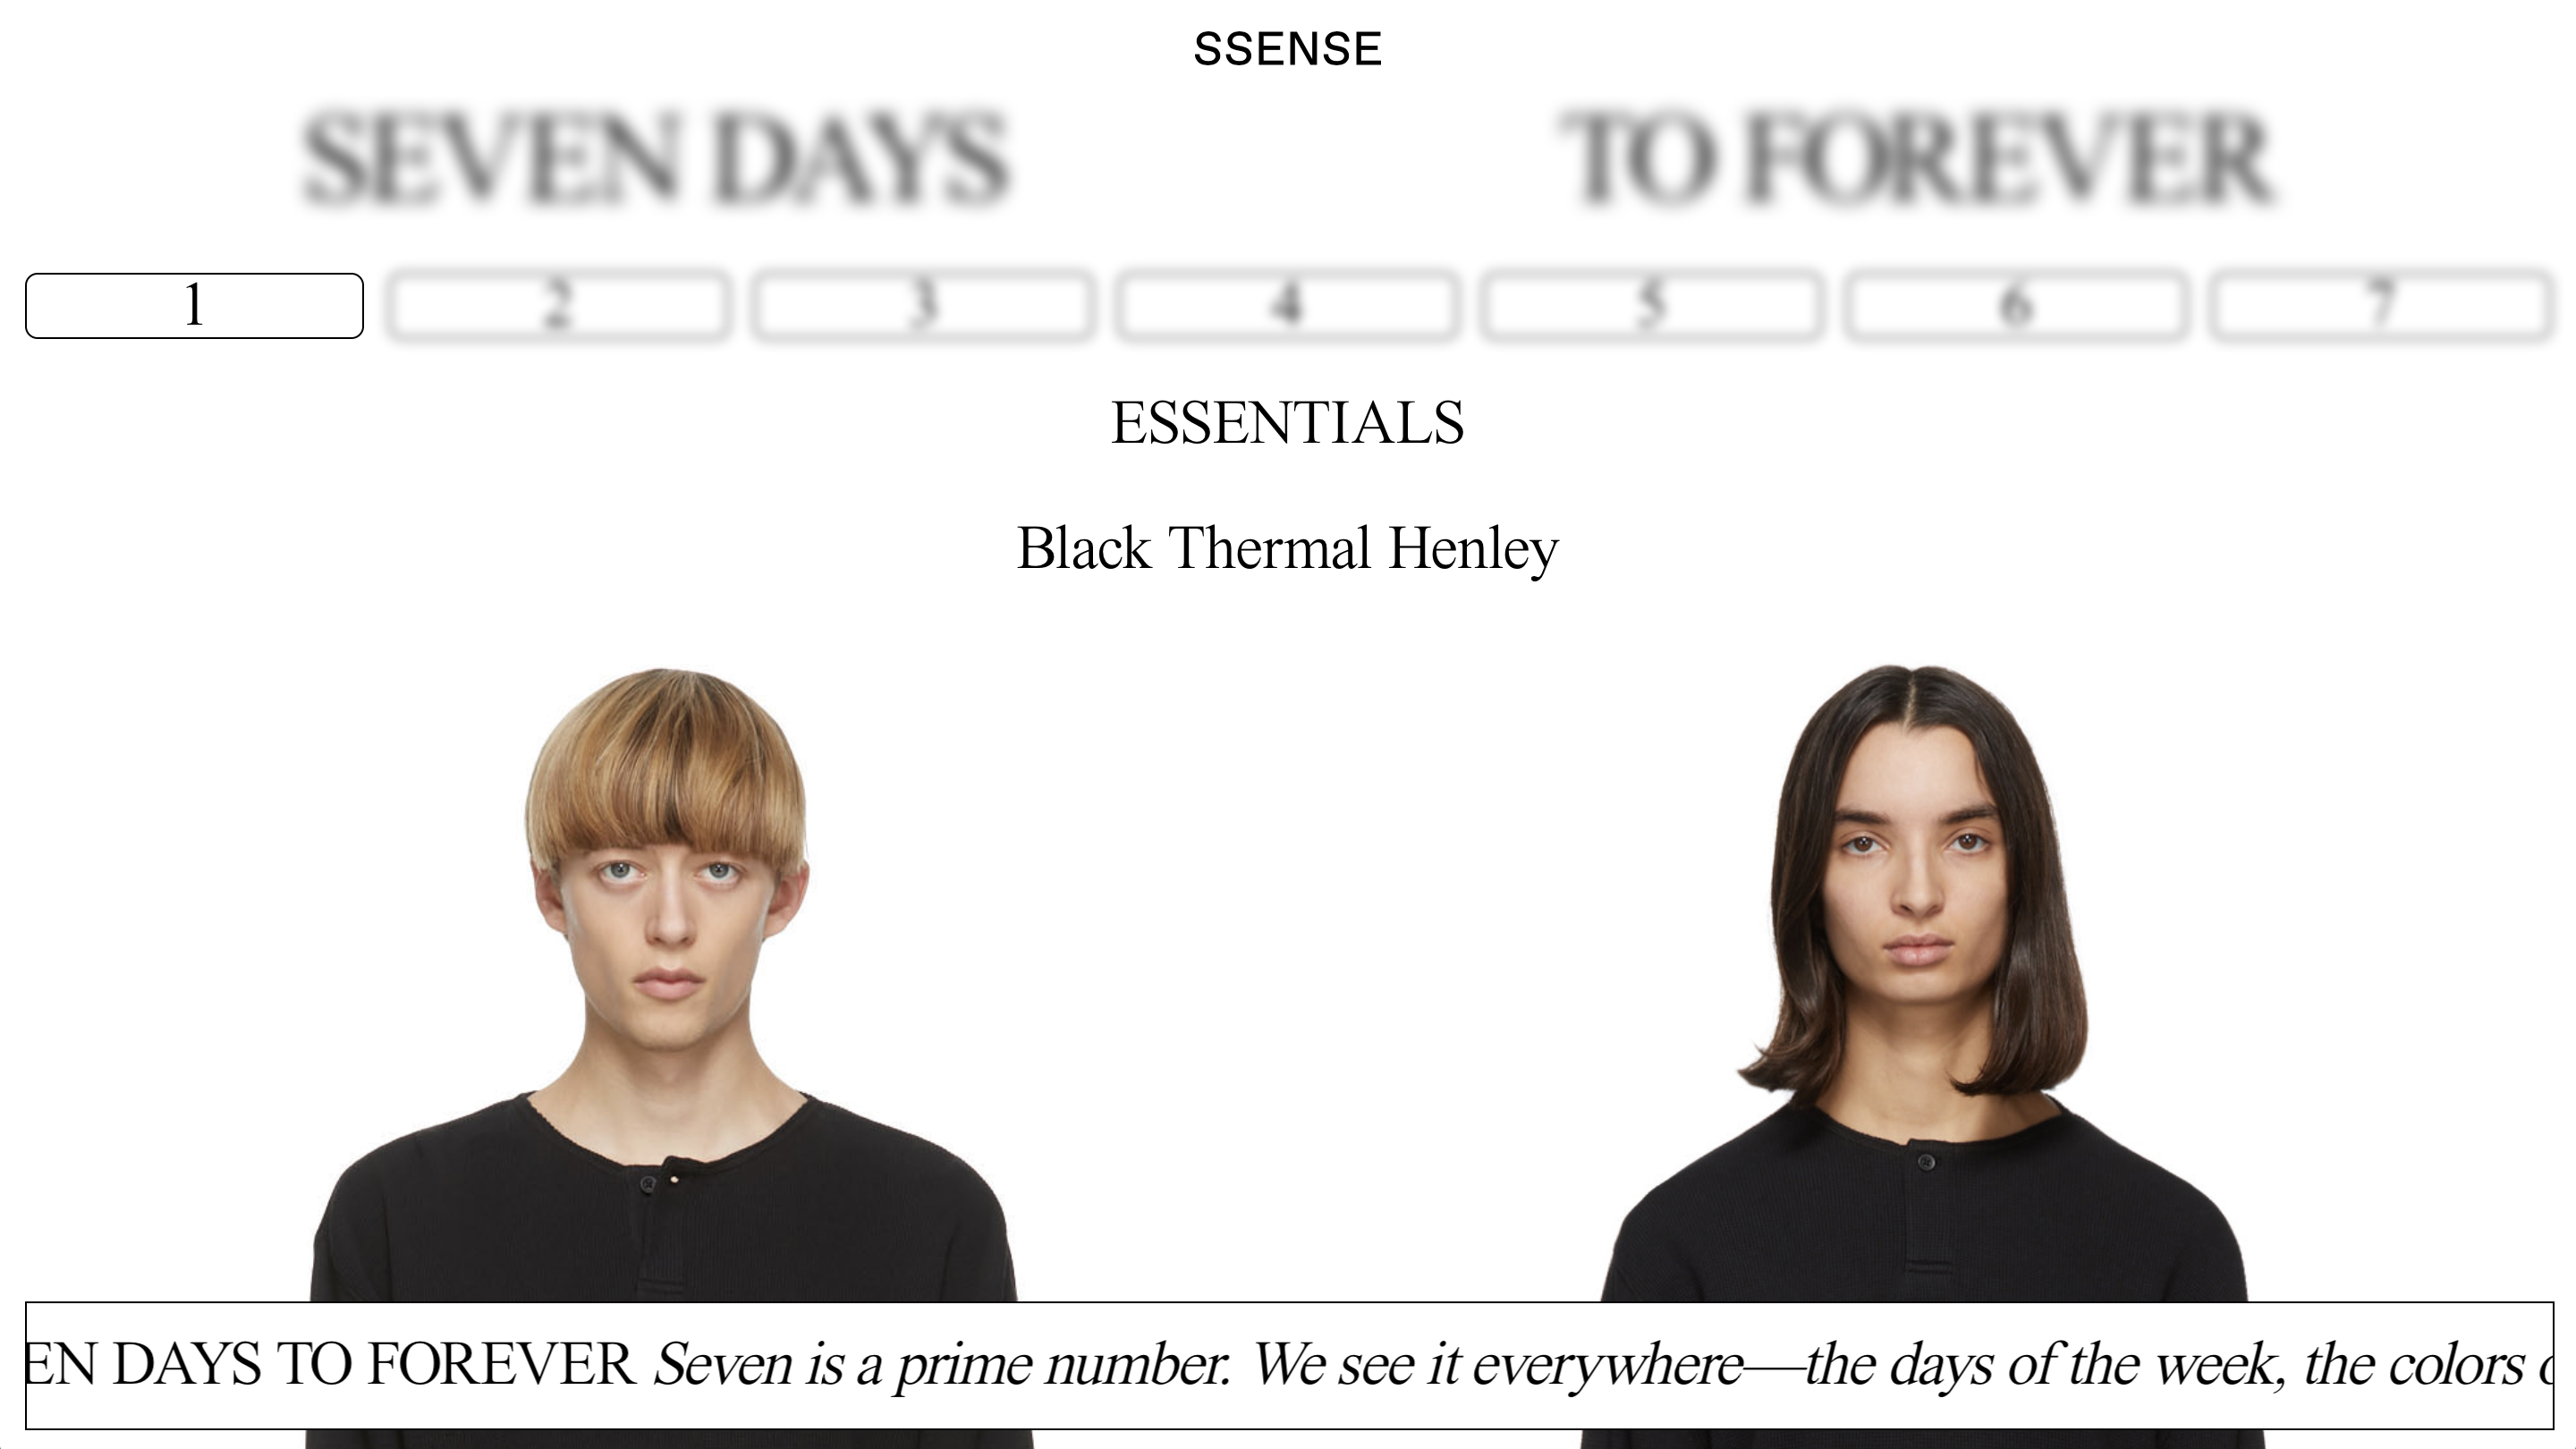 Fear of God Ssense 'Seven Days to Forever' Digital Experience